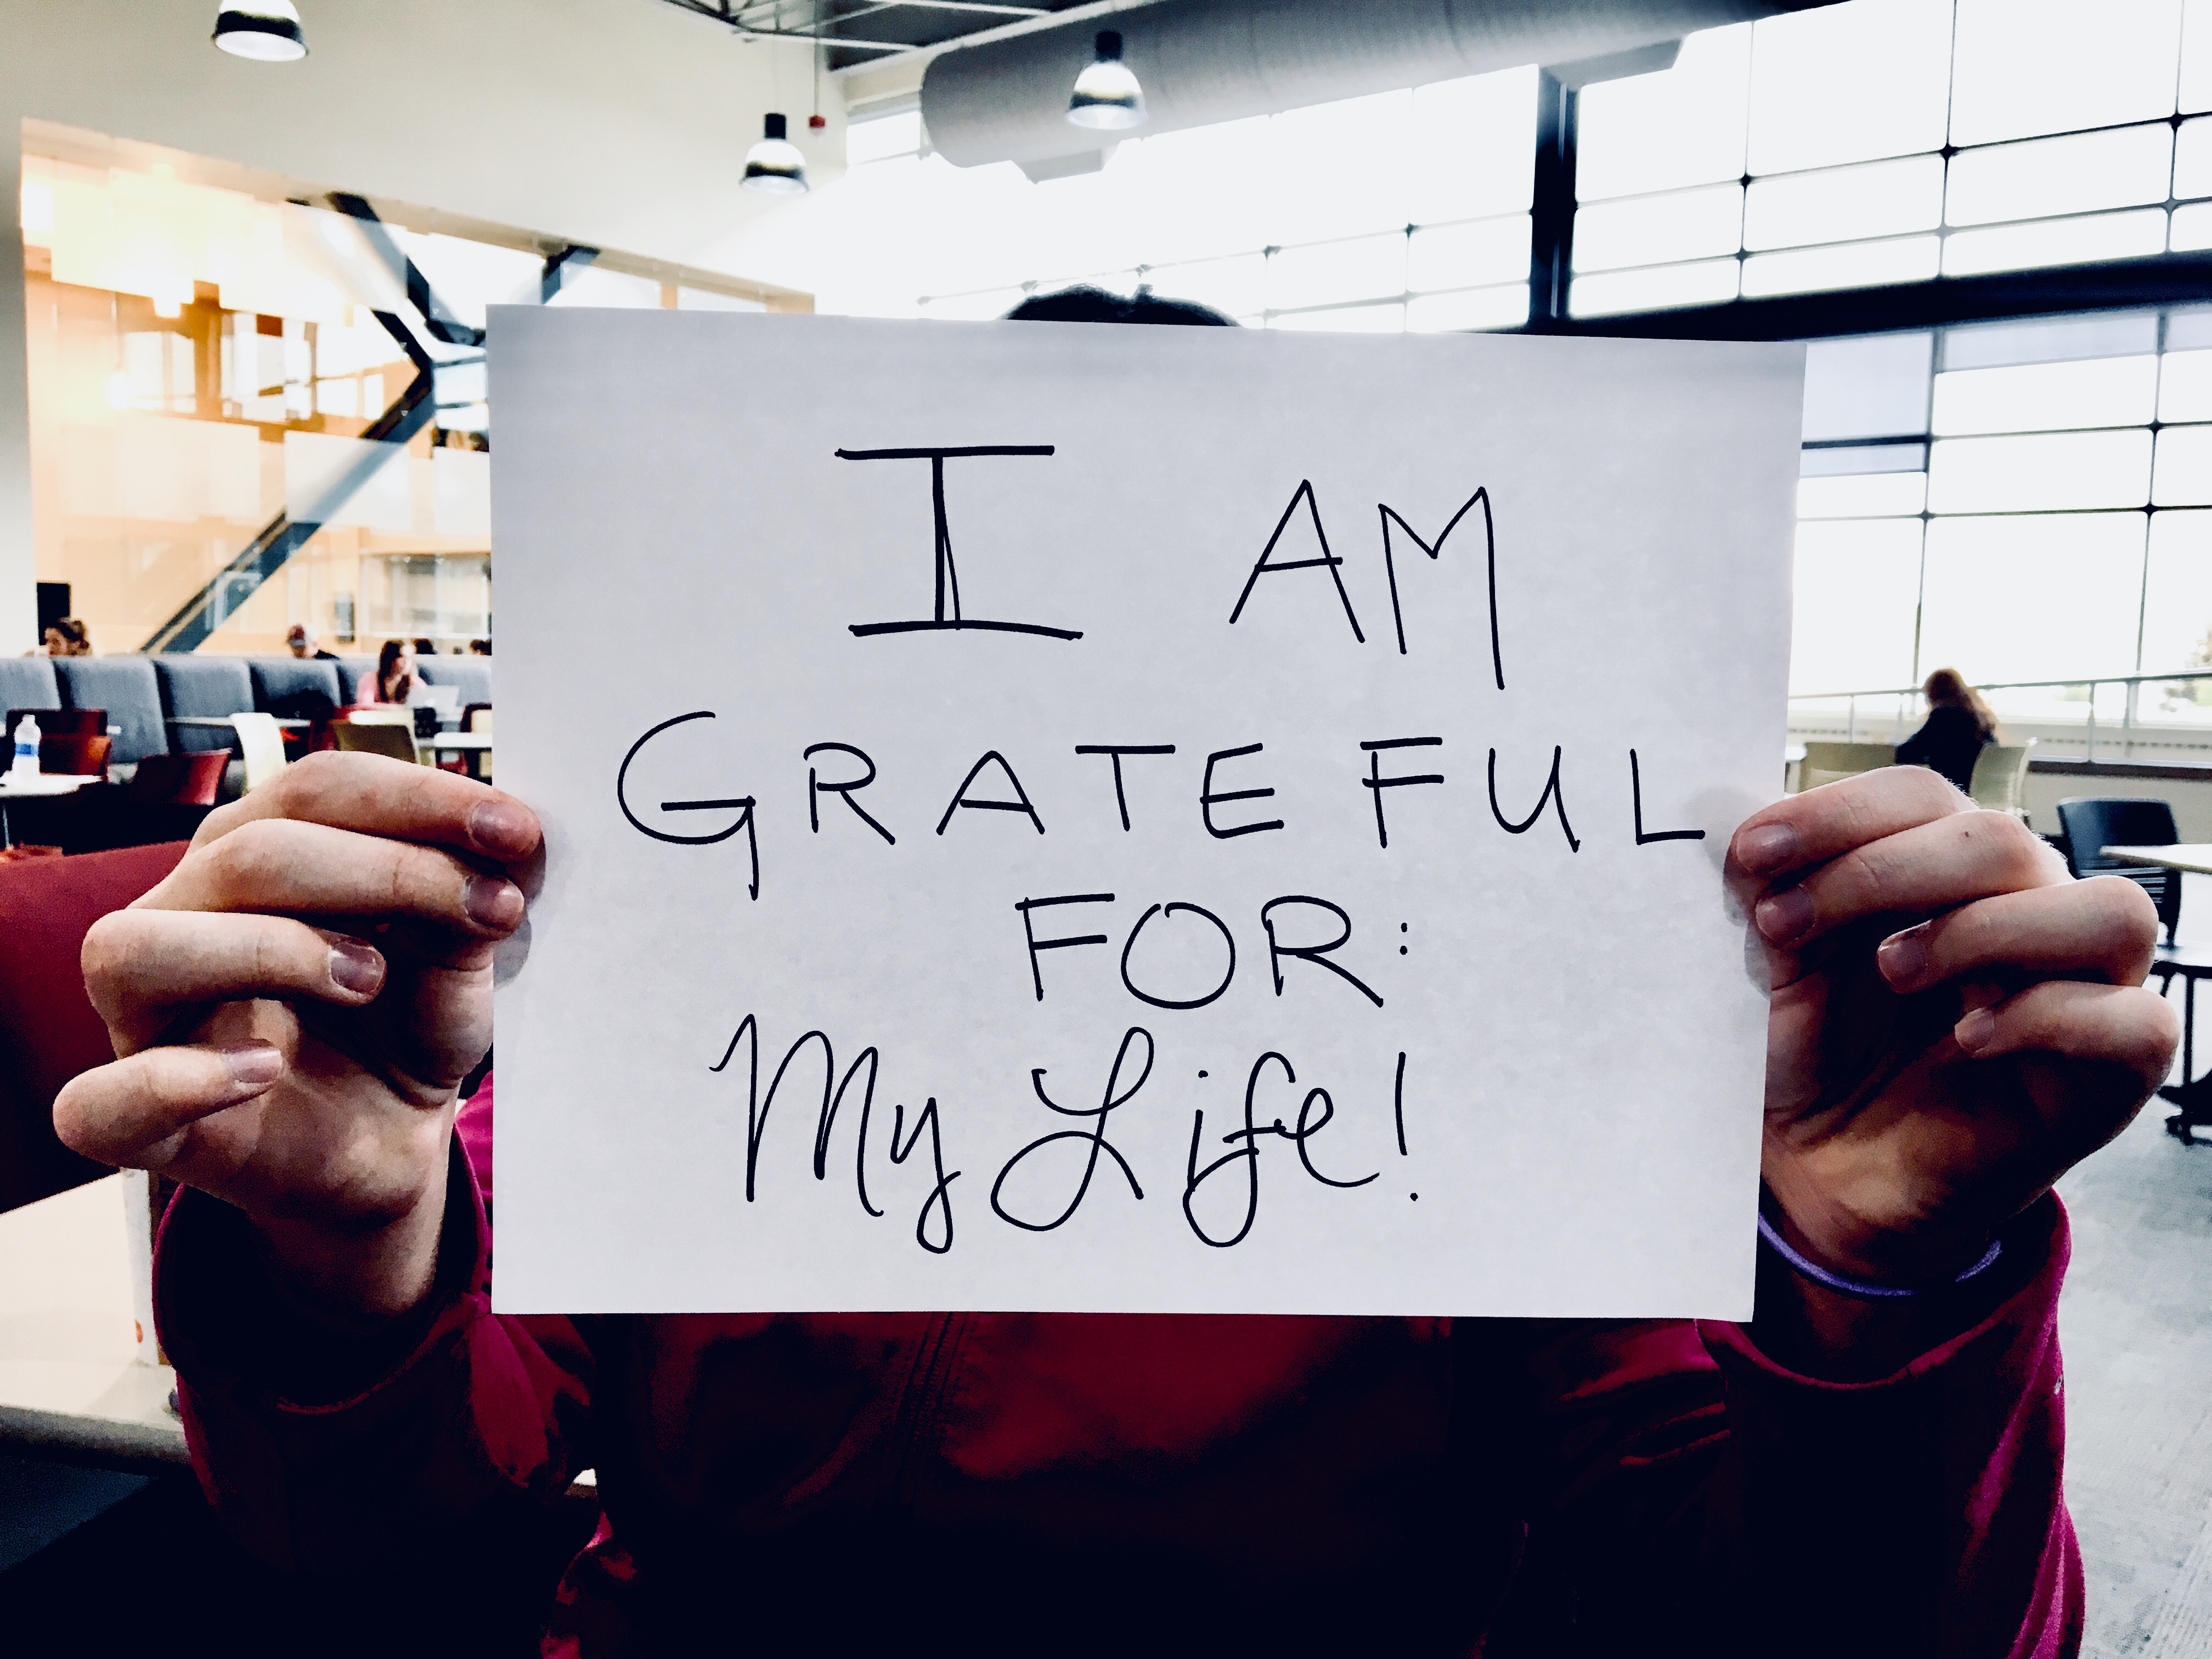 grateful for.. my life